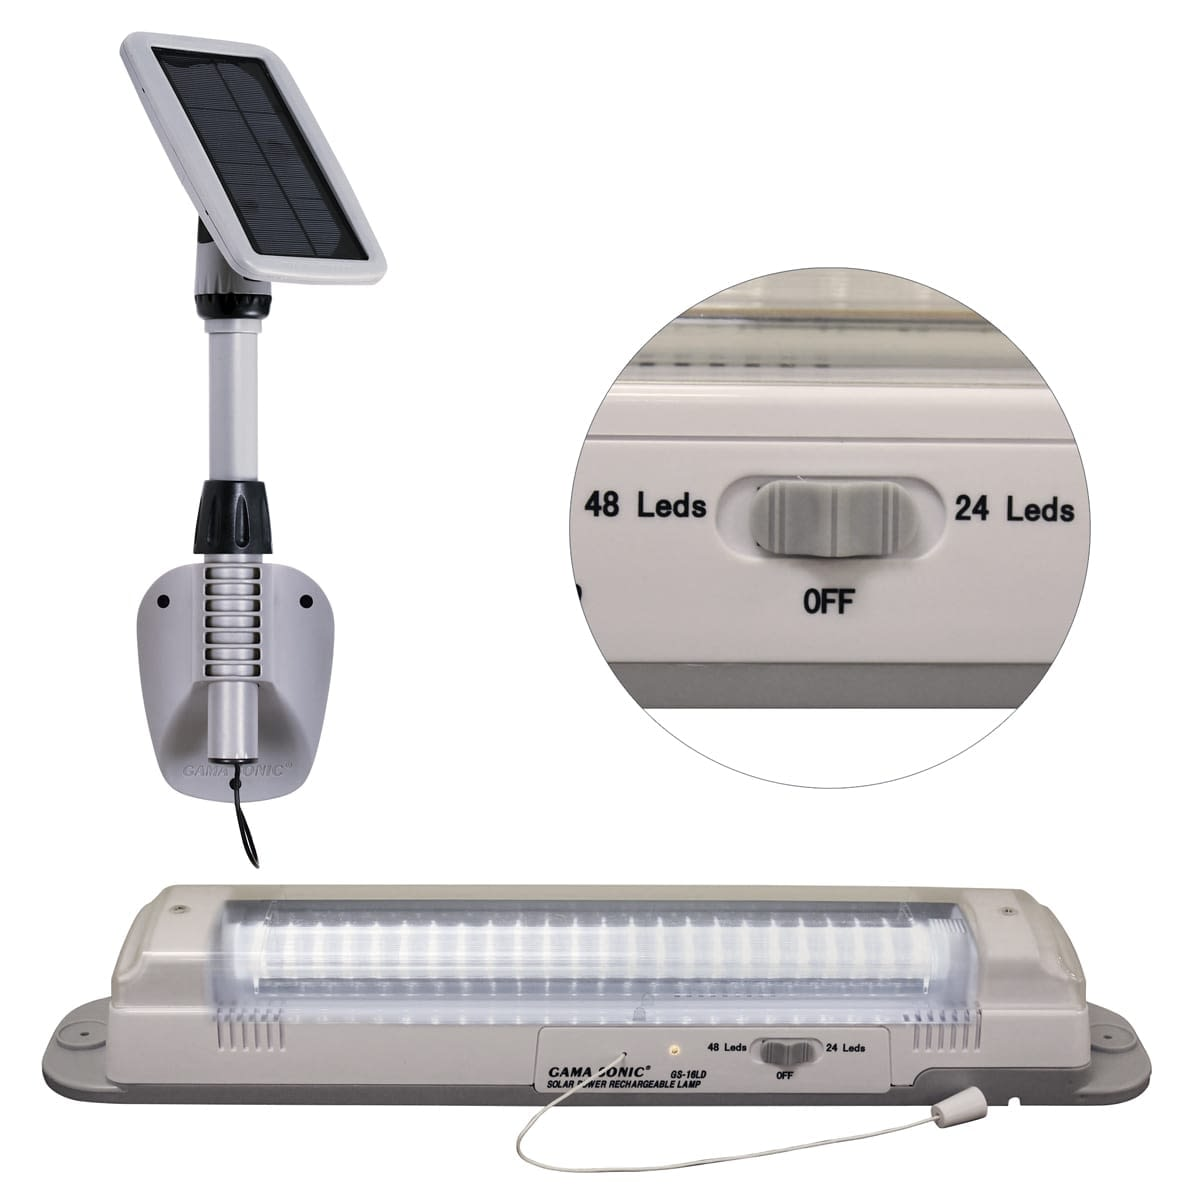 Solar Powered Shed Light-Light My Shed III-GS-16LD By Gama Sonic